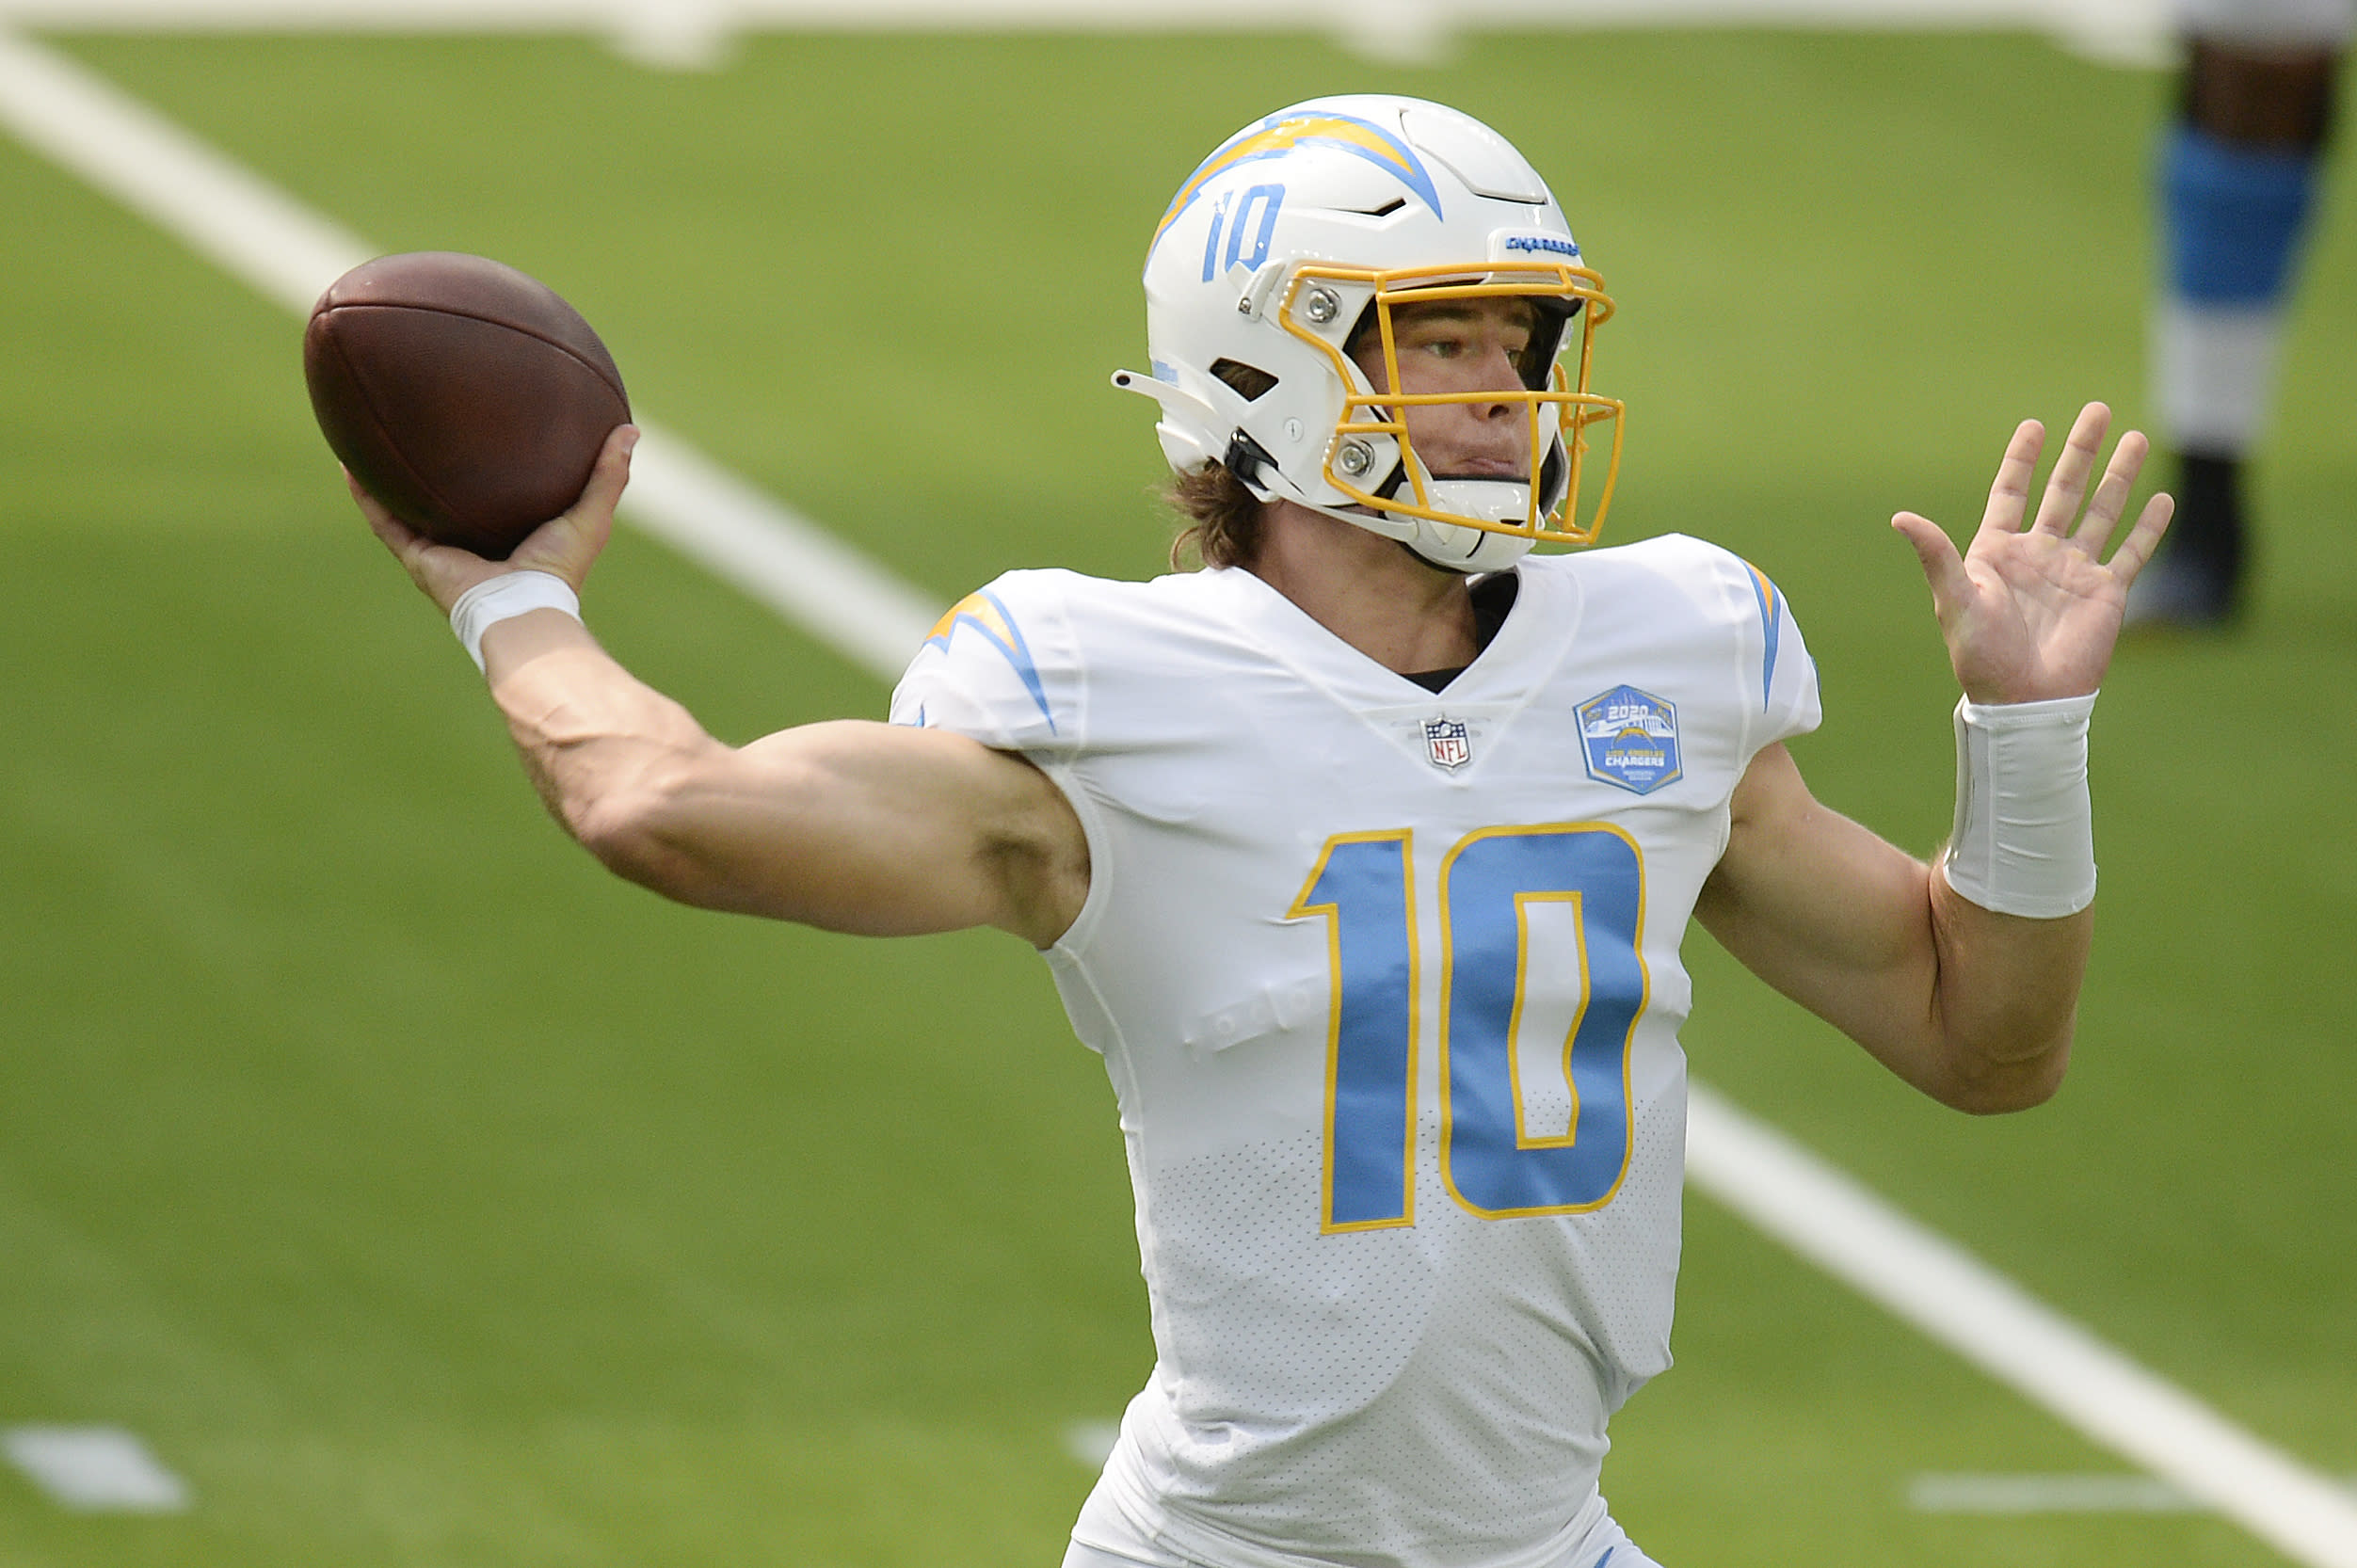 Los Angeles Chargers quarterback Justin Herbert throws against the Kansas City Chiefs during the first half of an NFL football game Sunday, Sept. 20, 2020, in Inglewood, Calif. (AP Photo/Kyusung Gong)